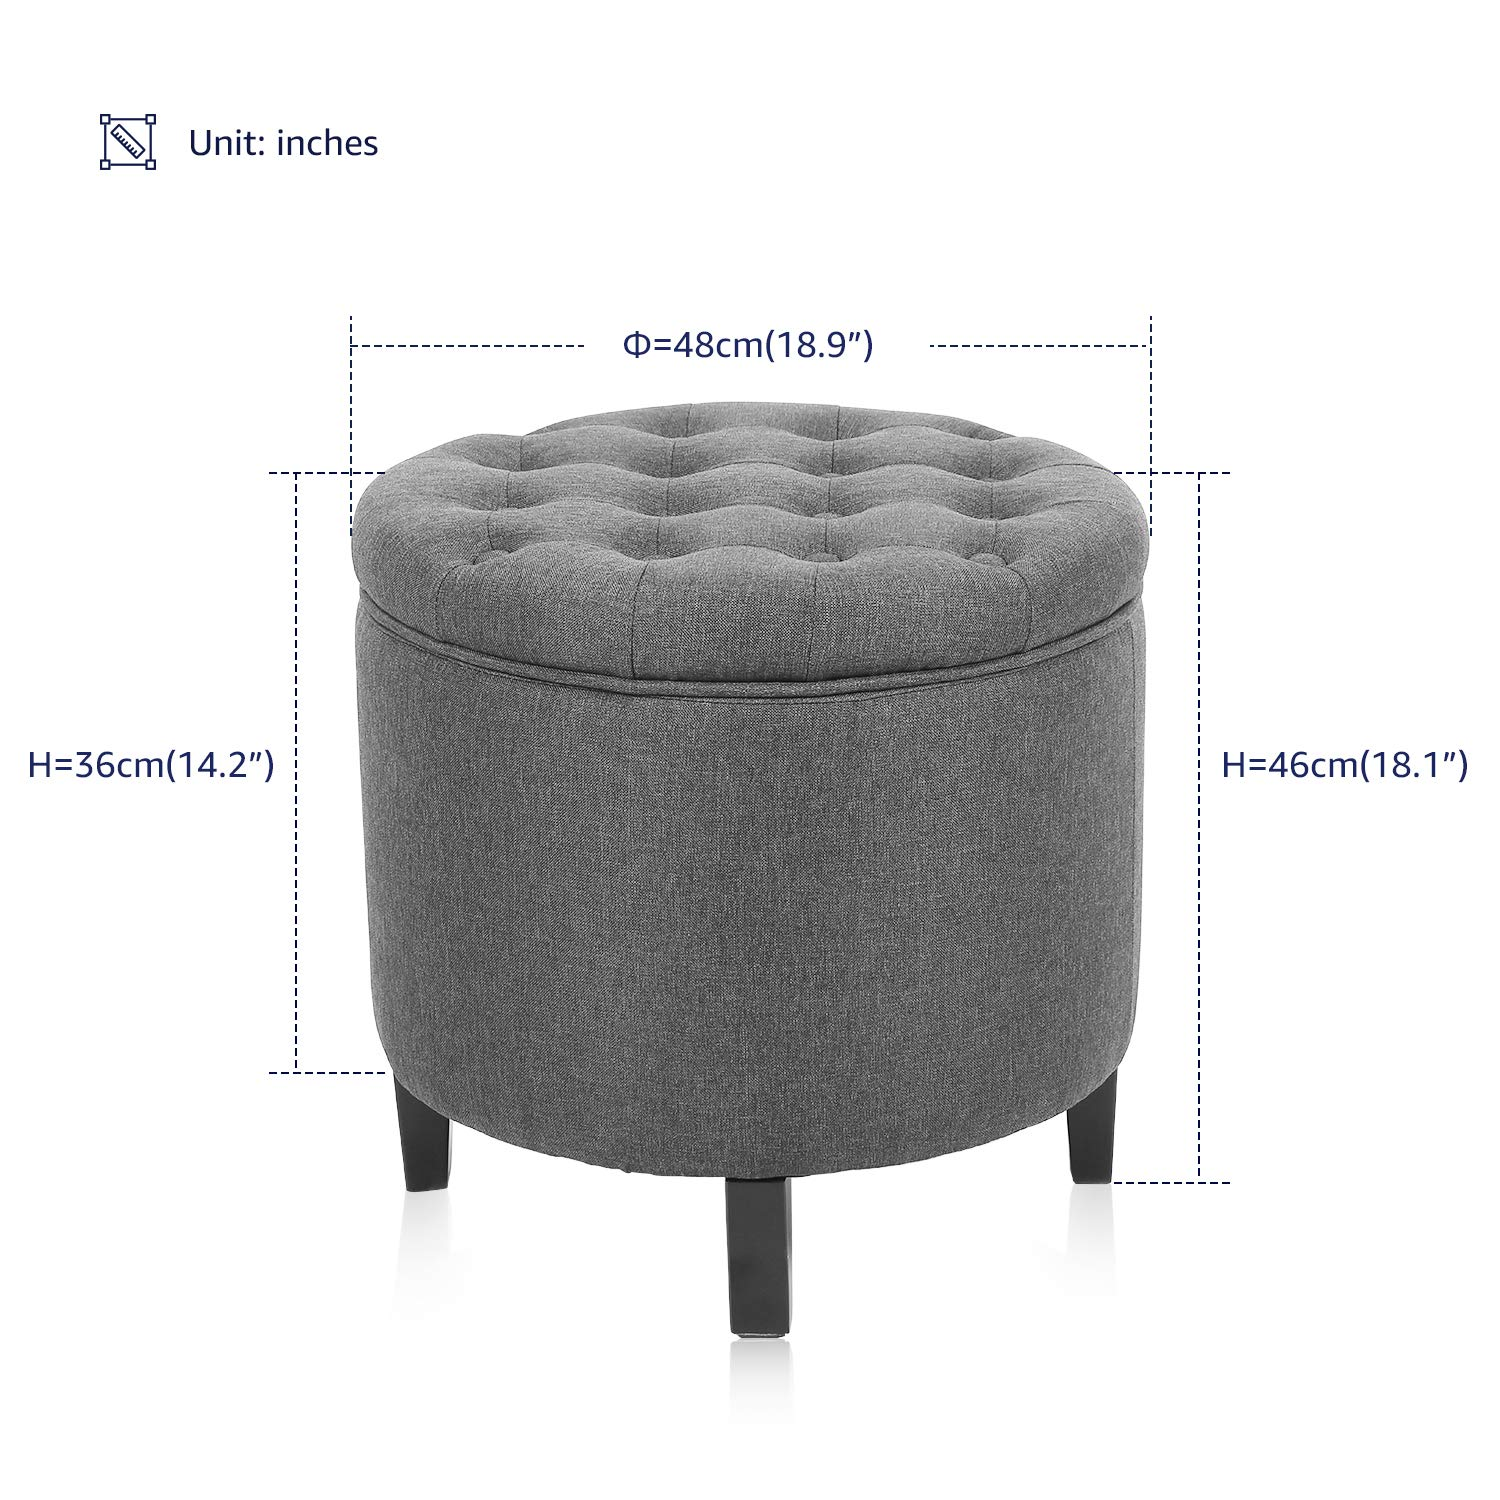 KERMS Collapsible Round Storage Ottoman Foot Stool Comfortable Seat with Wooden Feet and Lid, Soft Padding, Memory Foam,Soft and Convenience (Grey) by KERMS